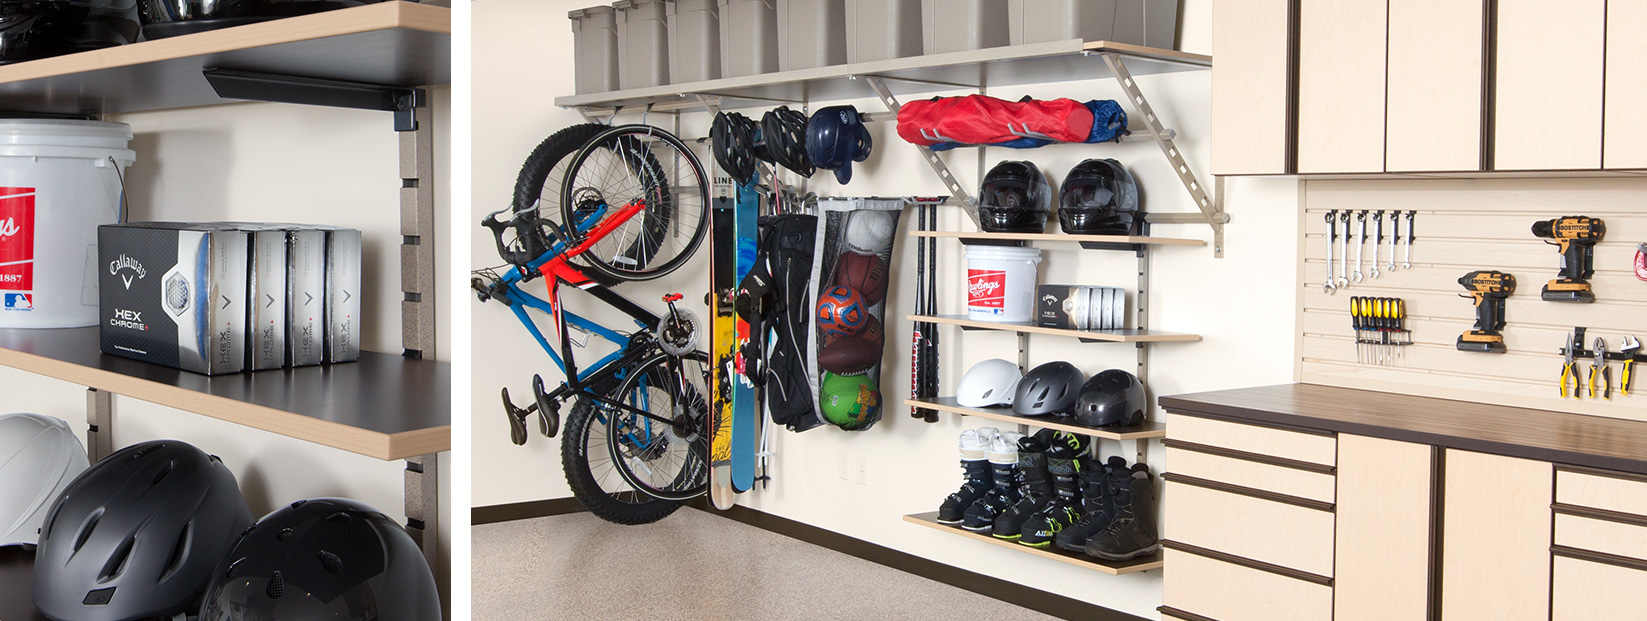 Garage Shelving System Indianapolis